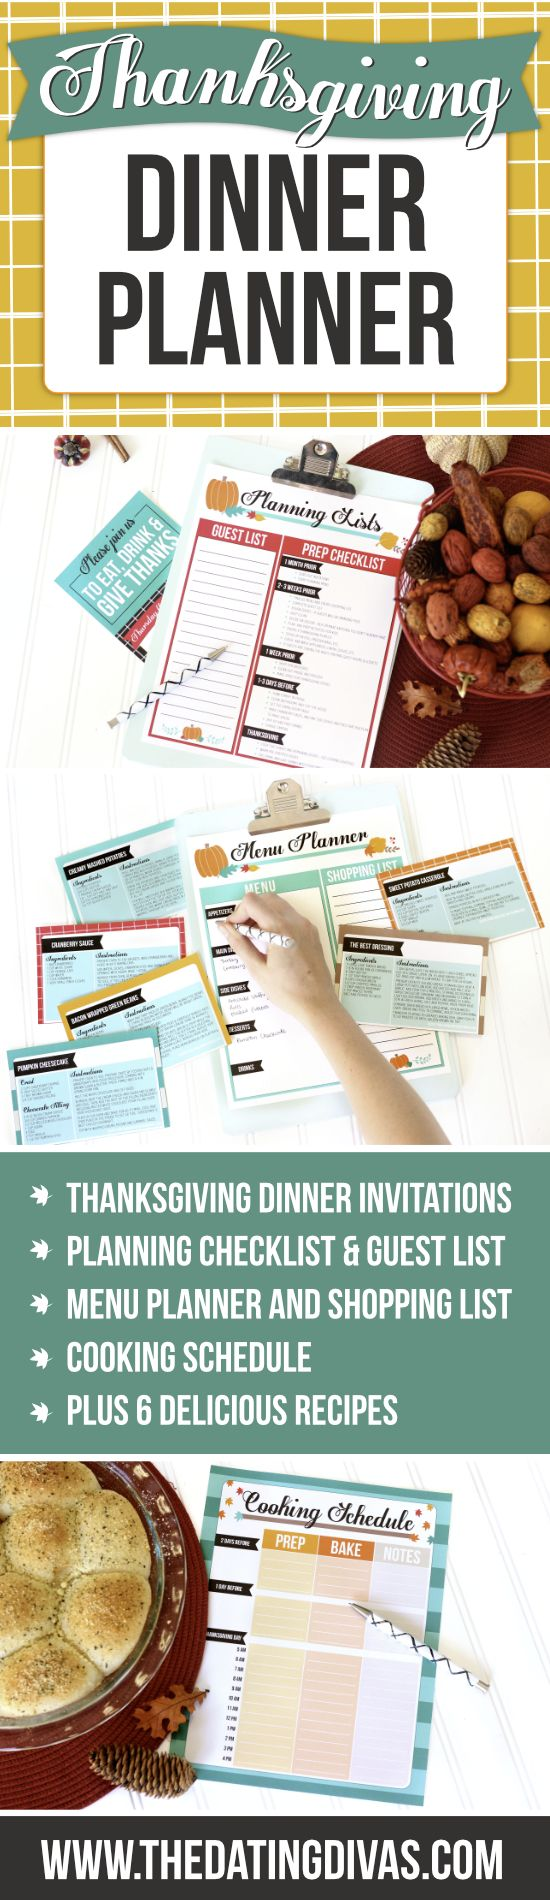 Hosting Thanksgiving dinner has never been so easy! This planning checklist and Thanksgving meal planner is a lifesaver.